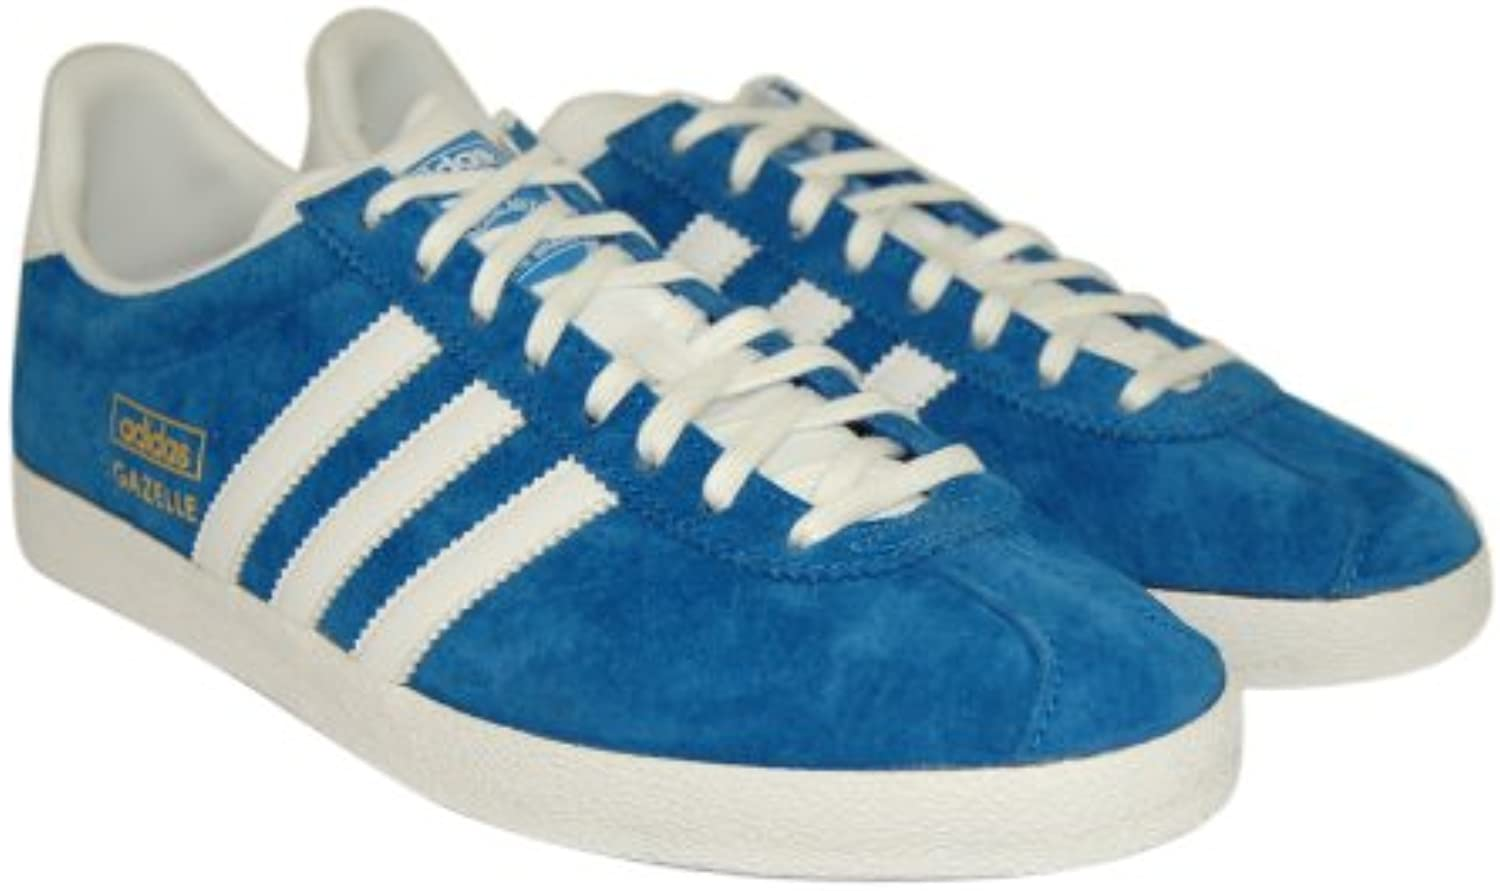 Adidas Mens Gazelle OG Blue Suede Trainers Trainers Suede 097fe8